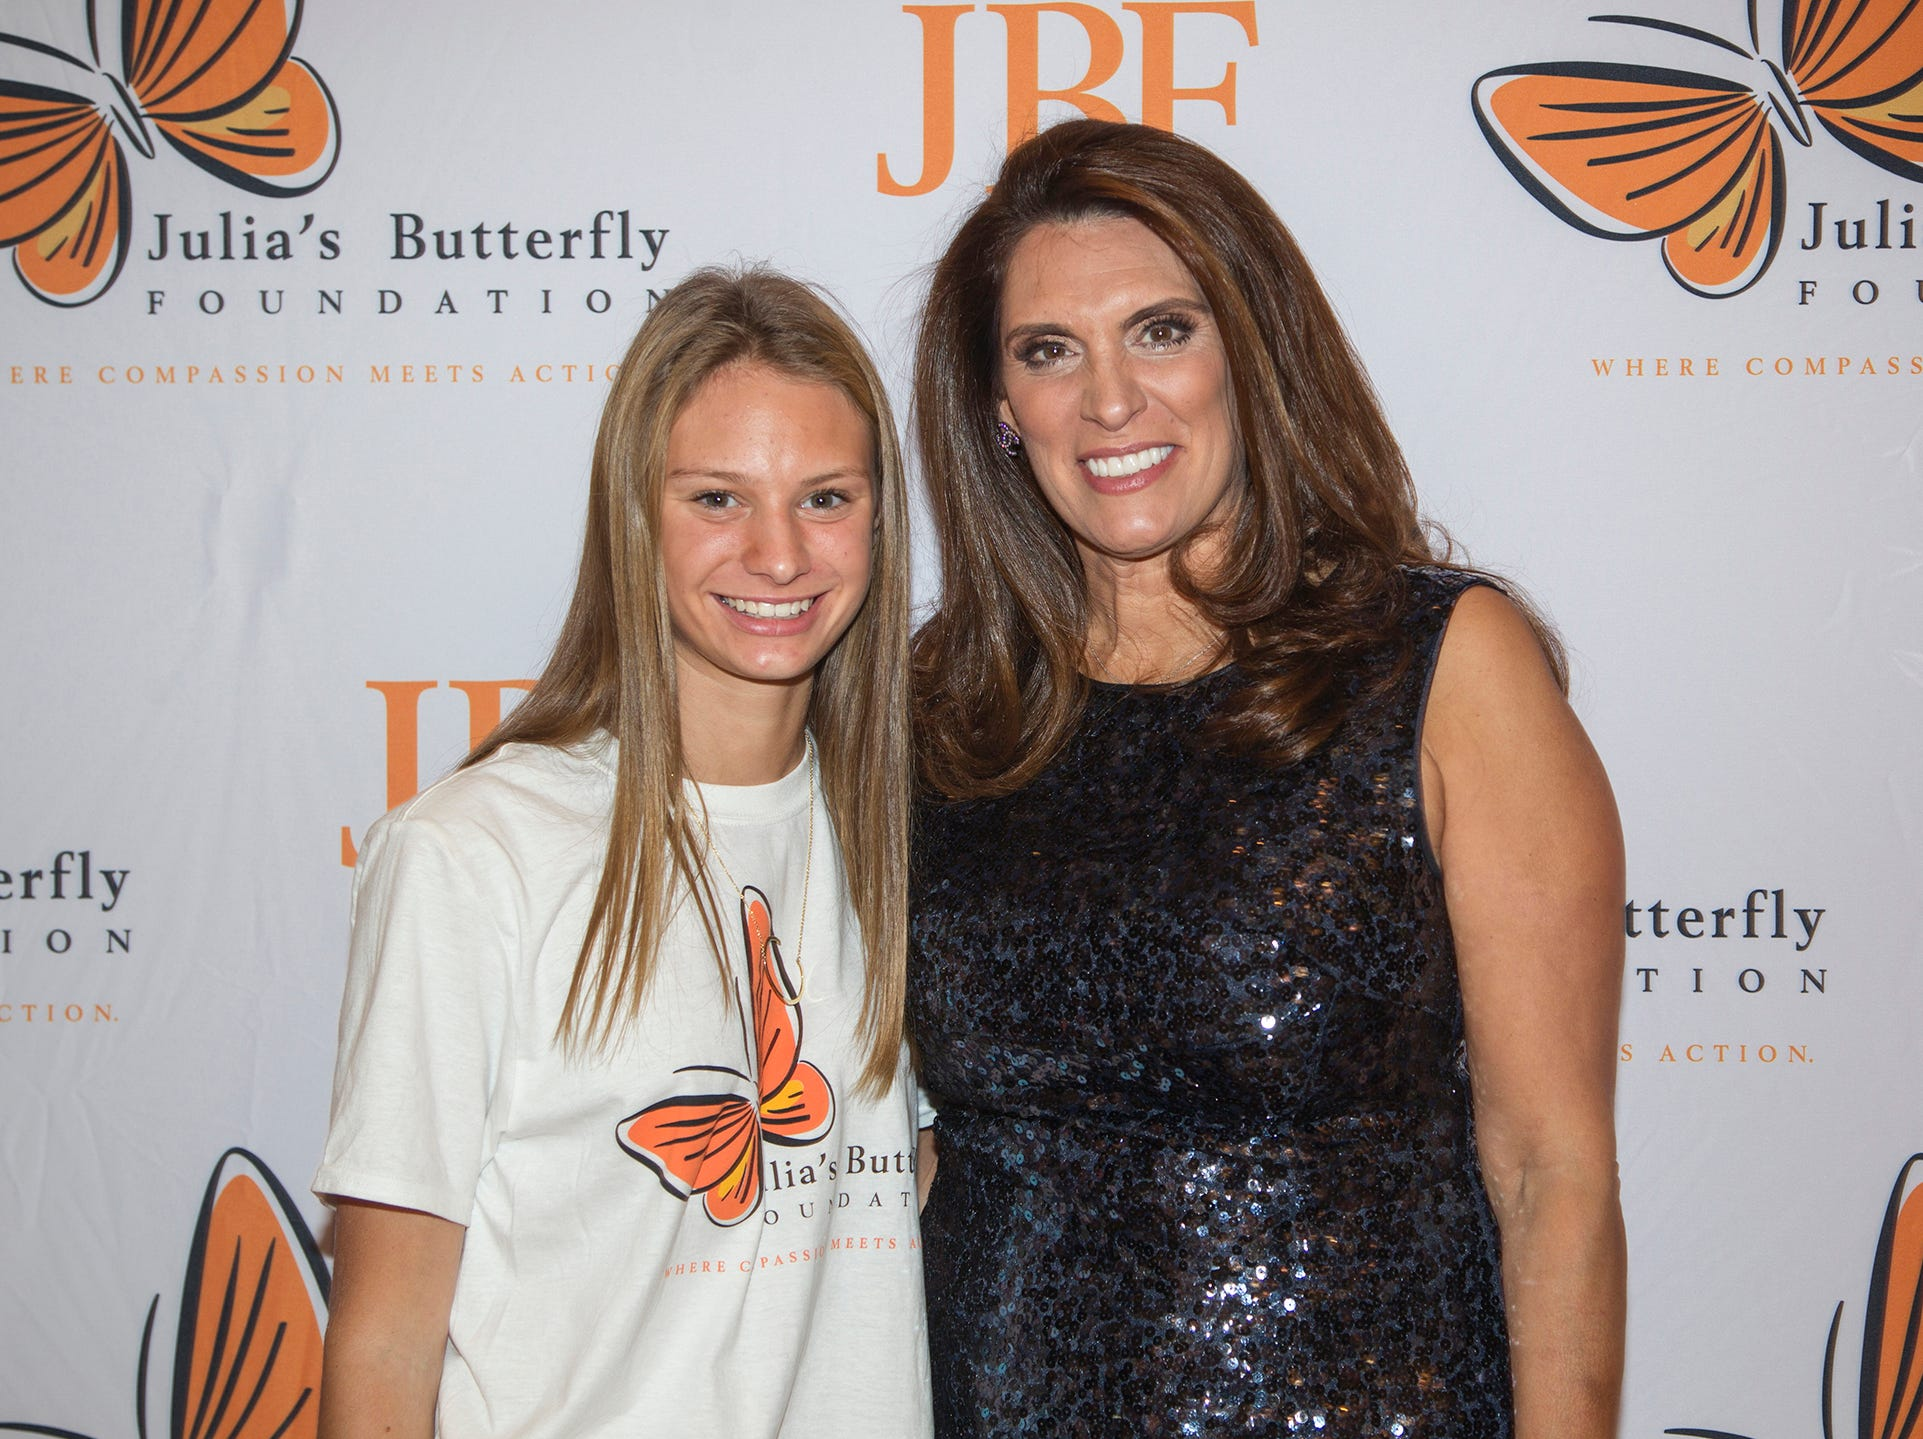 Christine, Christine Callahan. The 13th annual Julia's Butterfly Foundation Ball at Macaluso's in Hawthrorne. Julia's Butterfly Foundation is a volunteer 501 (c) 3 organization whose mission is to provide assistance to families of chronically and terminally ill children to improve their quality of life. 11/11/2018